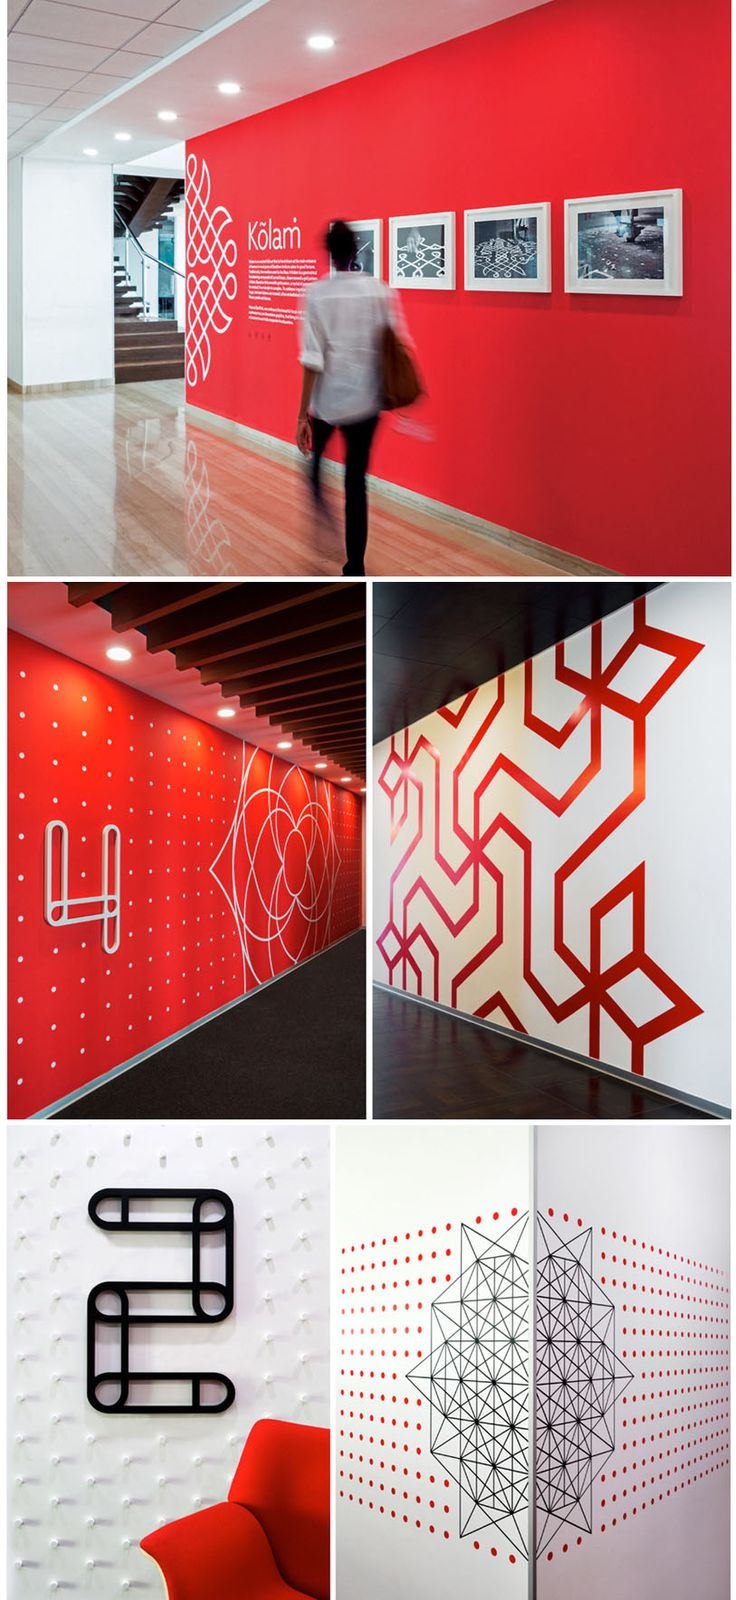 Wall Graphics In This Office Were Inspired By Indian Folk Art